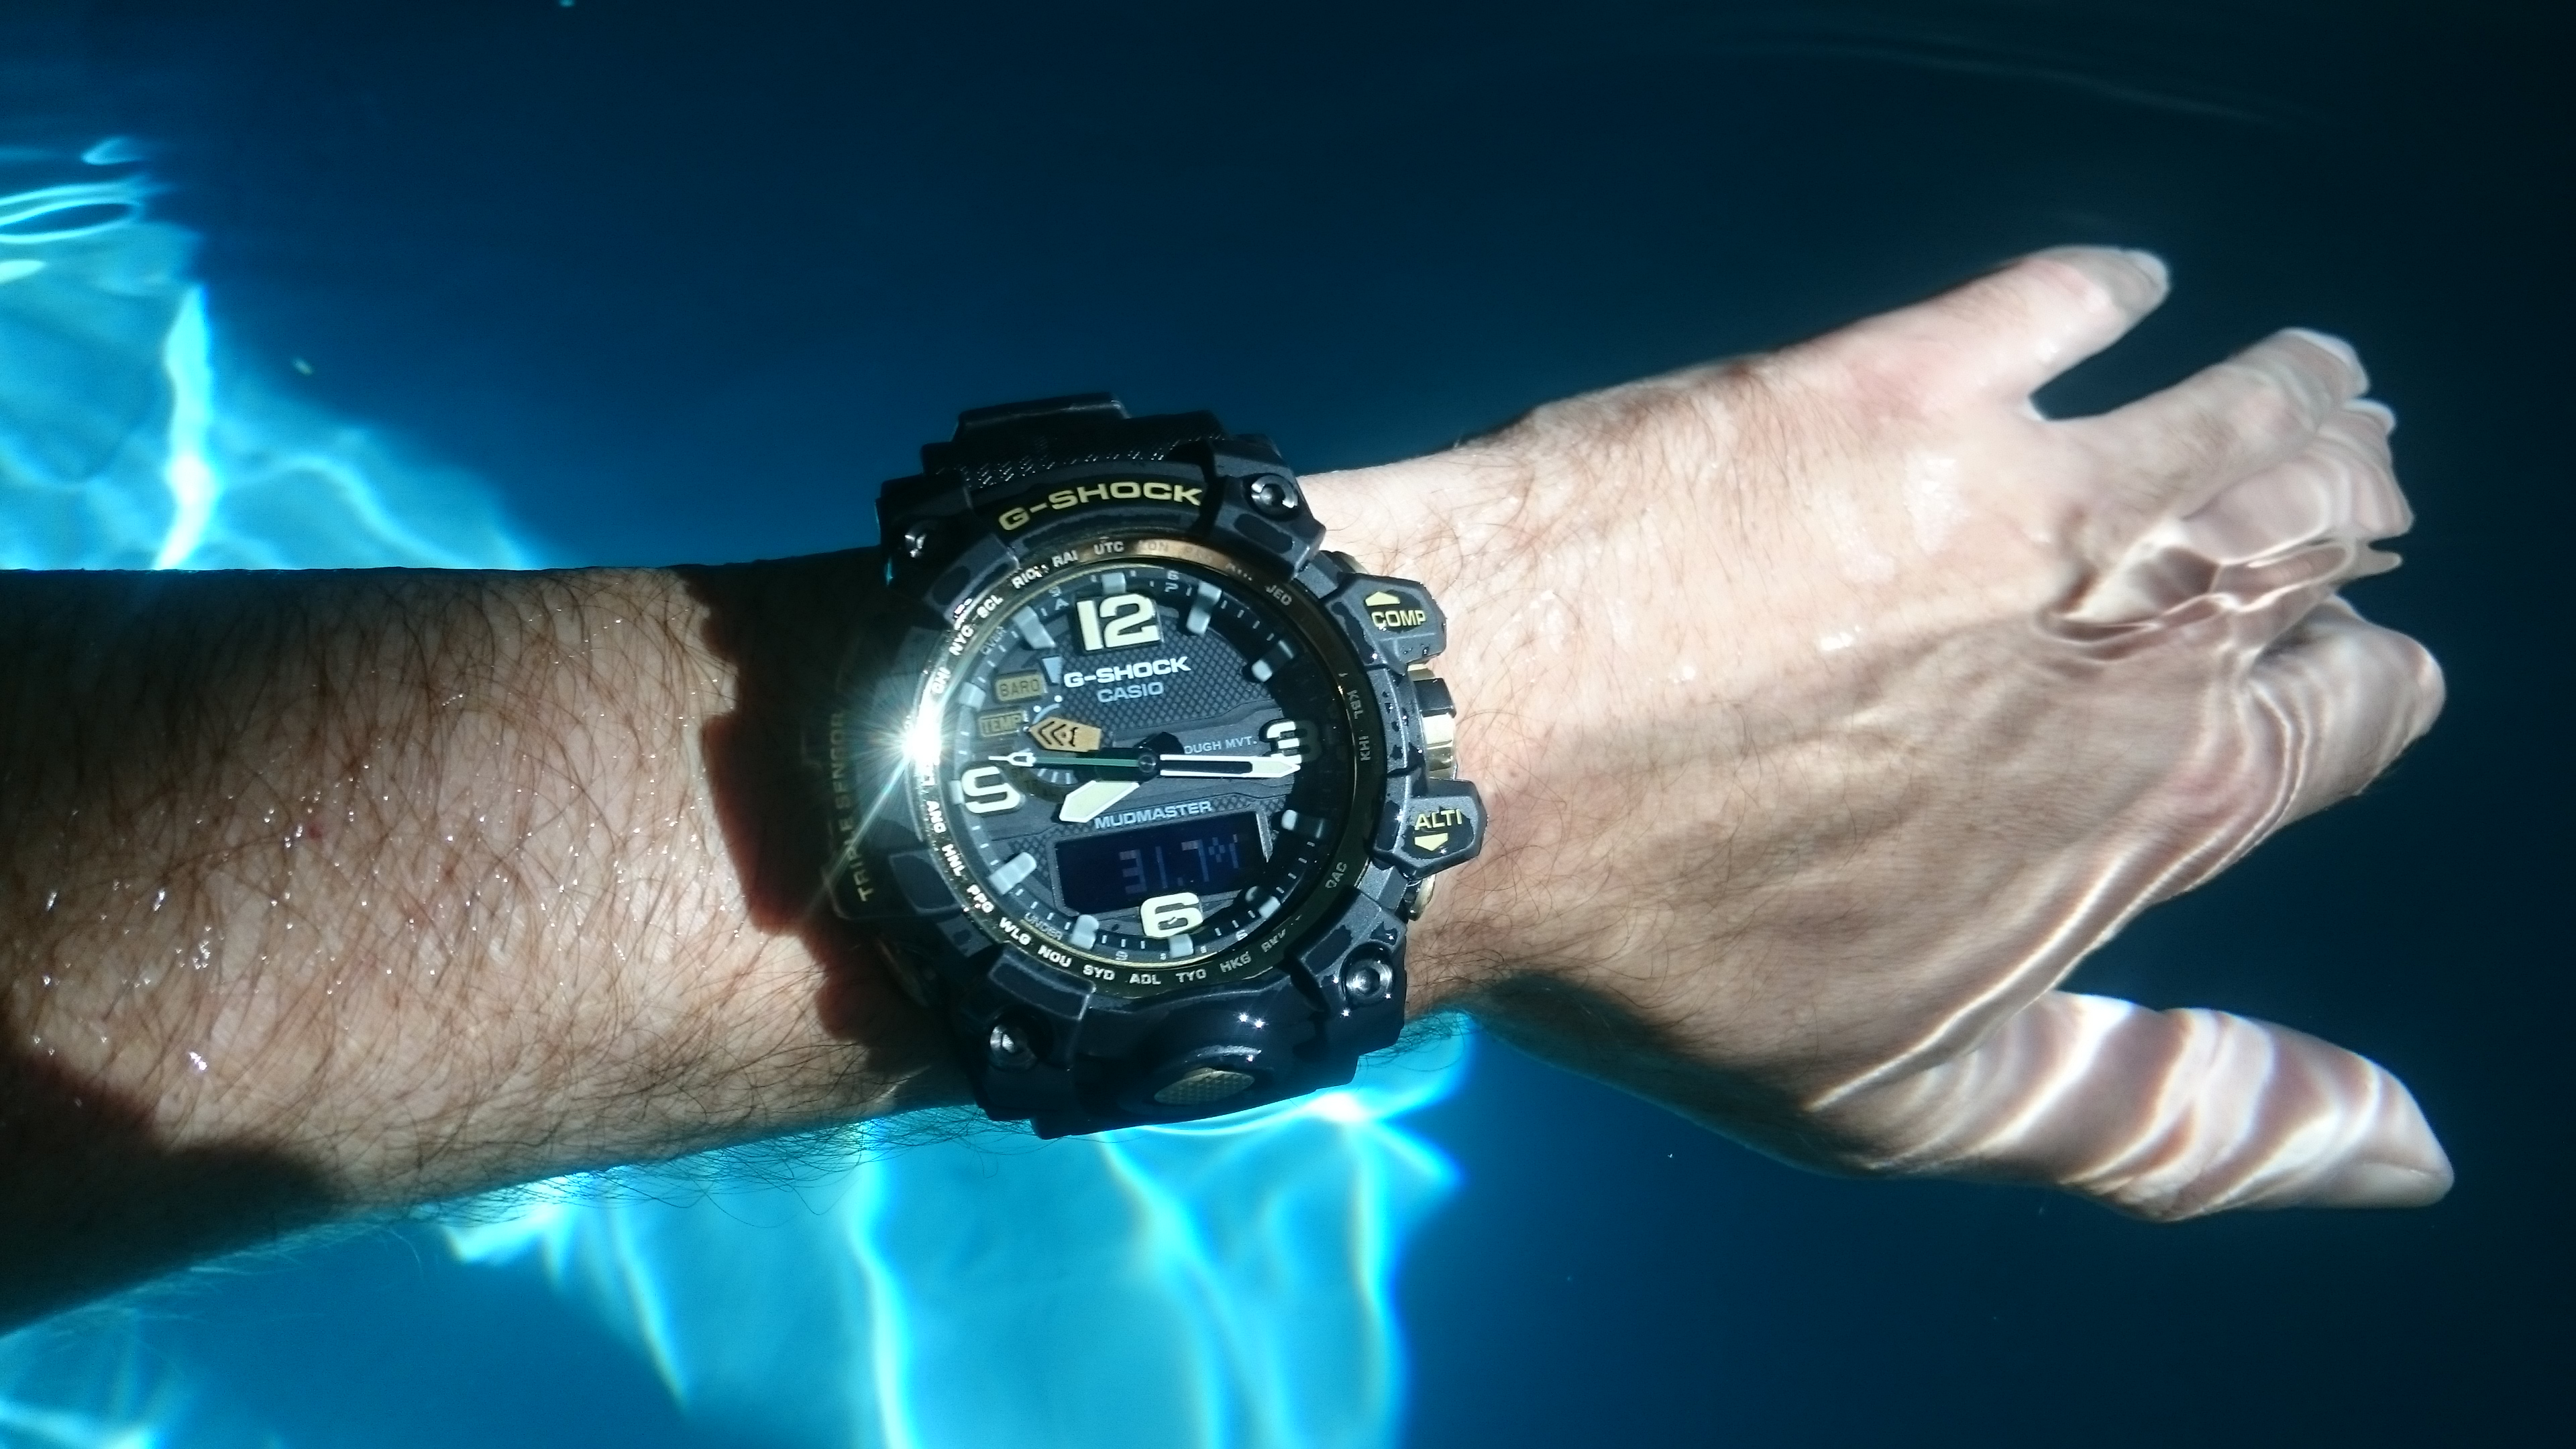 Hands on with the Mudmaster G-SHOCK watch